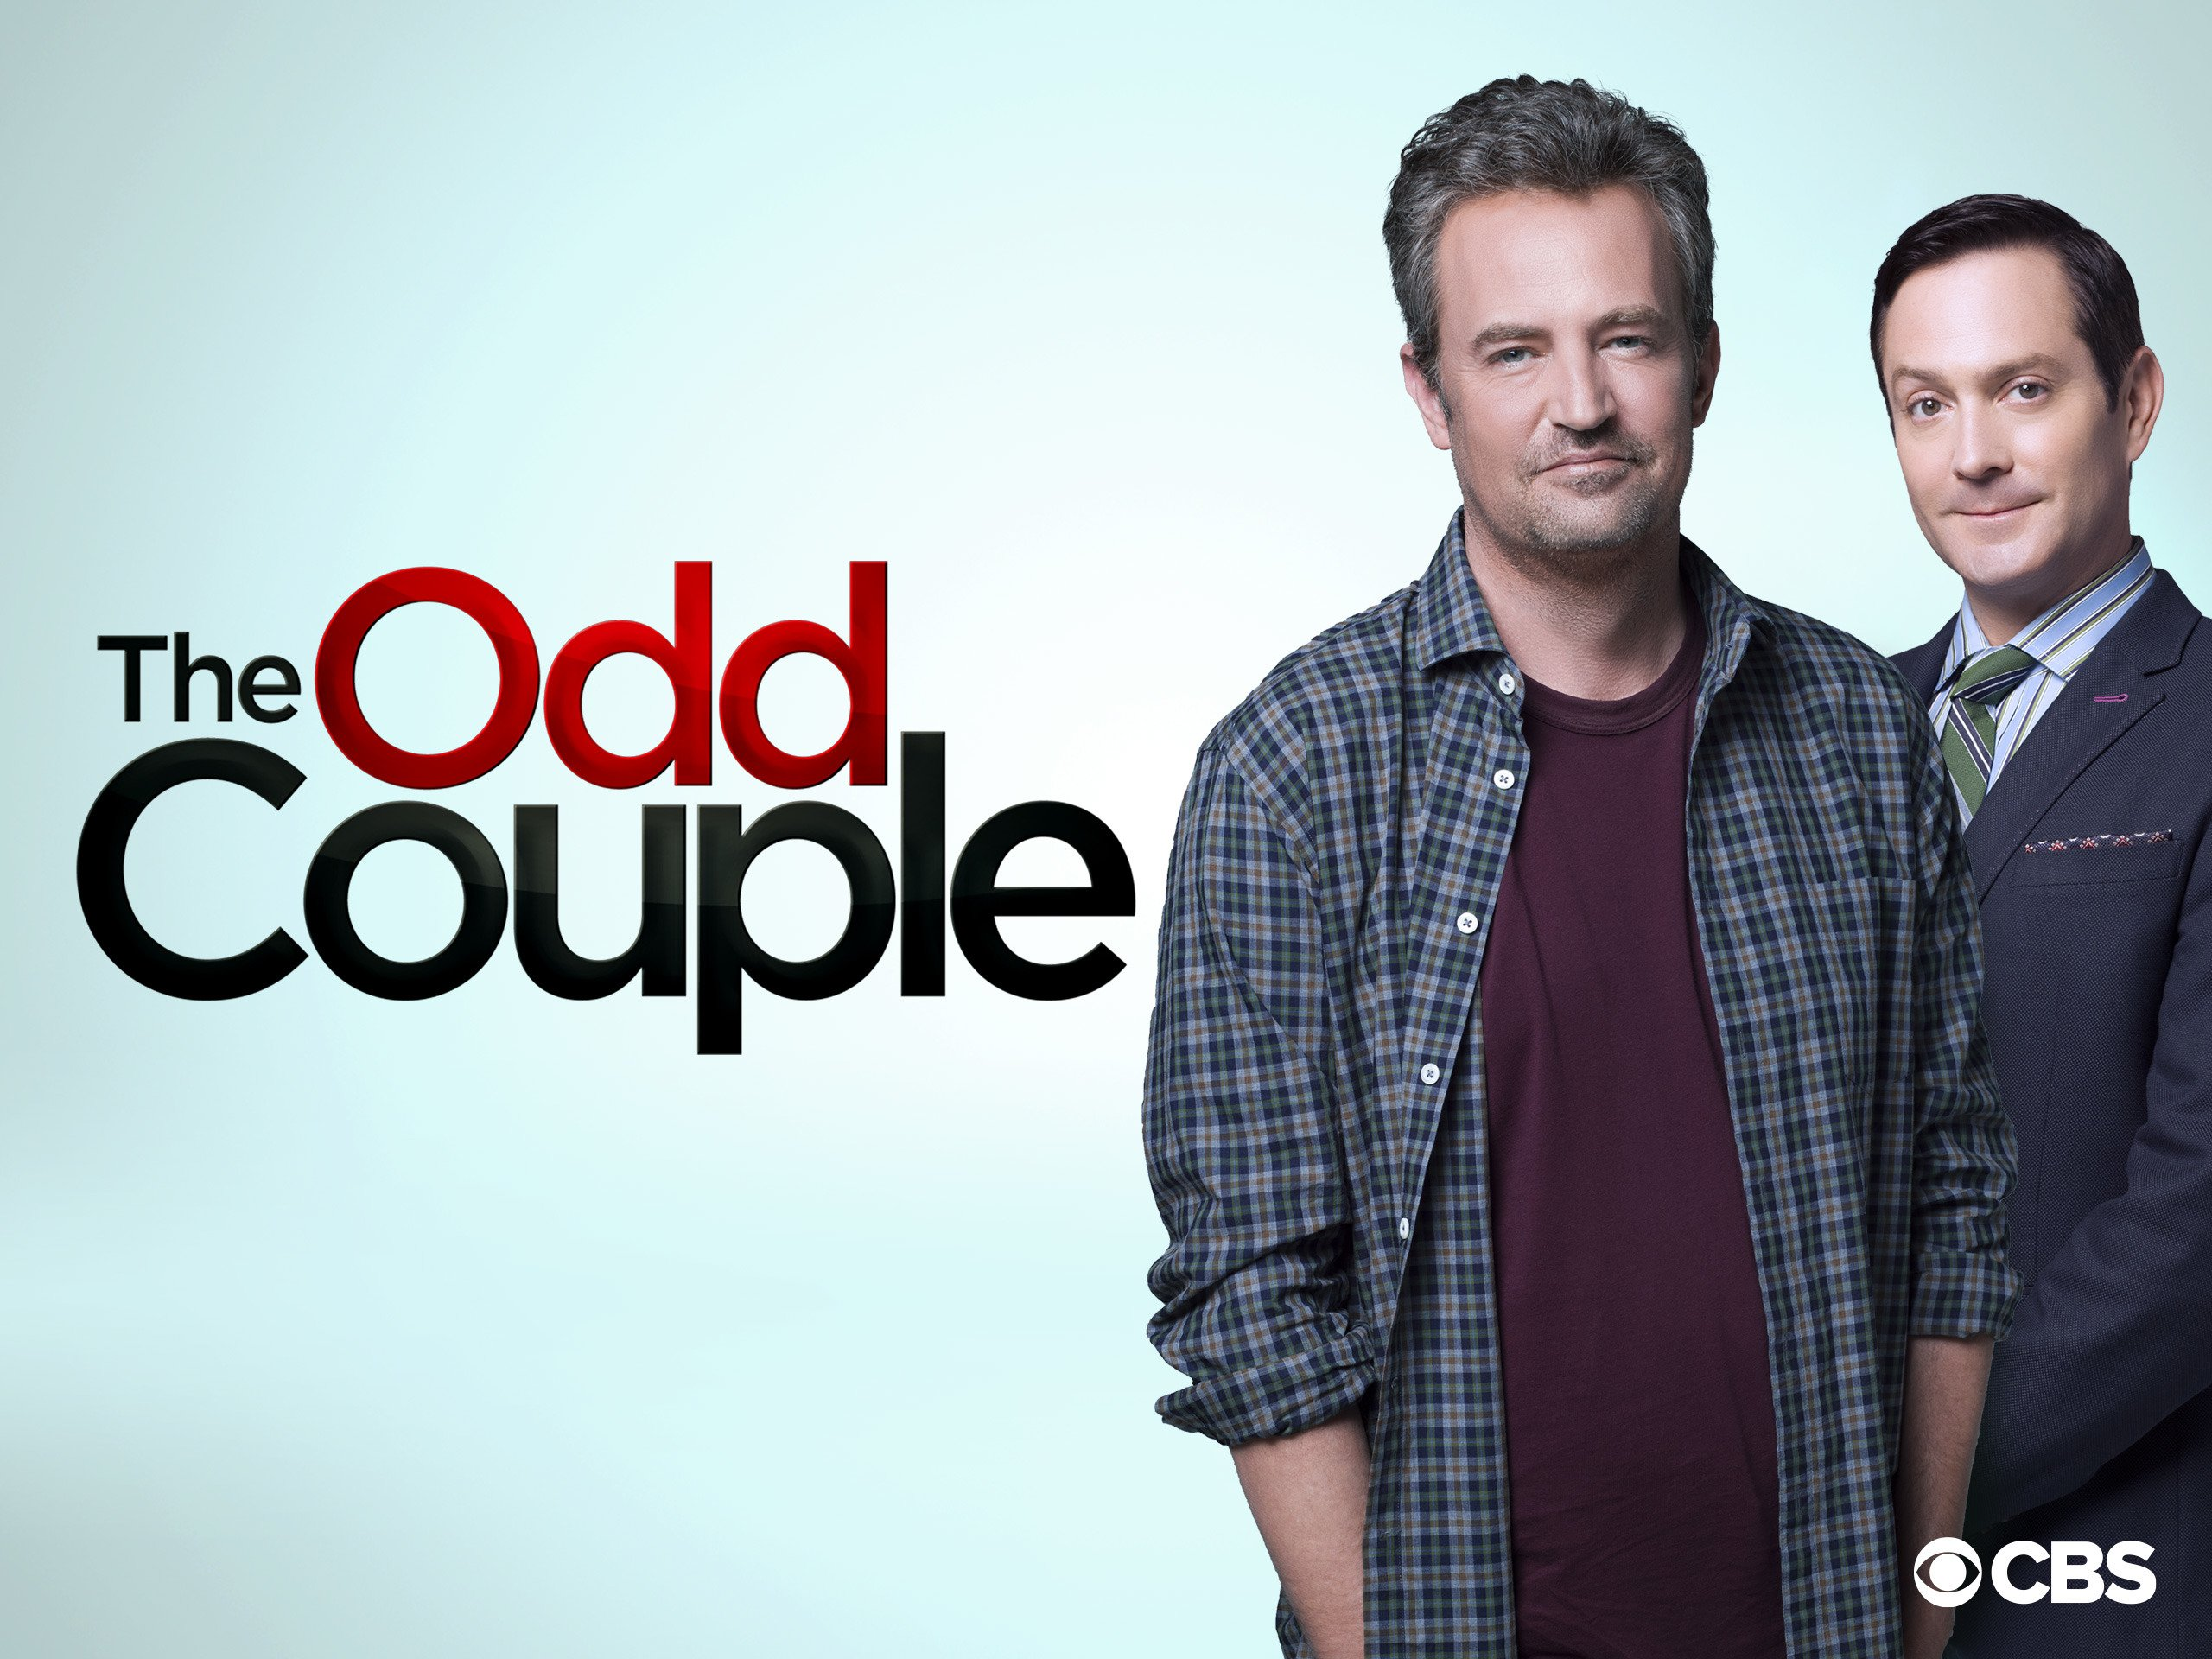 amazon com watch the odd couple season 1 prime video rh amazon com